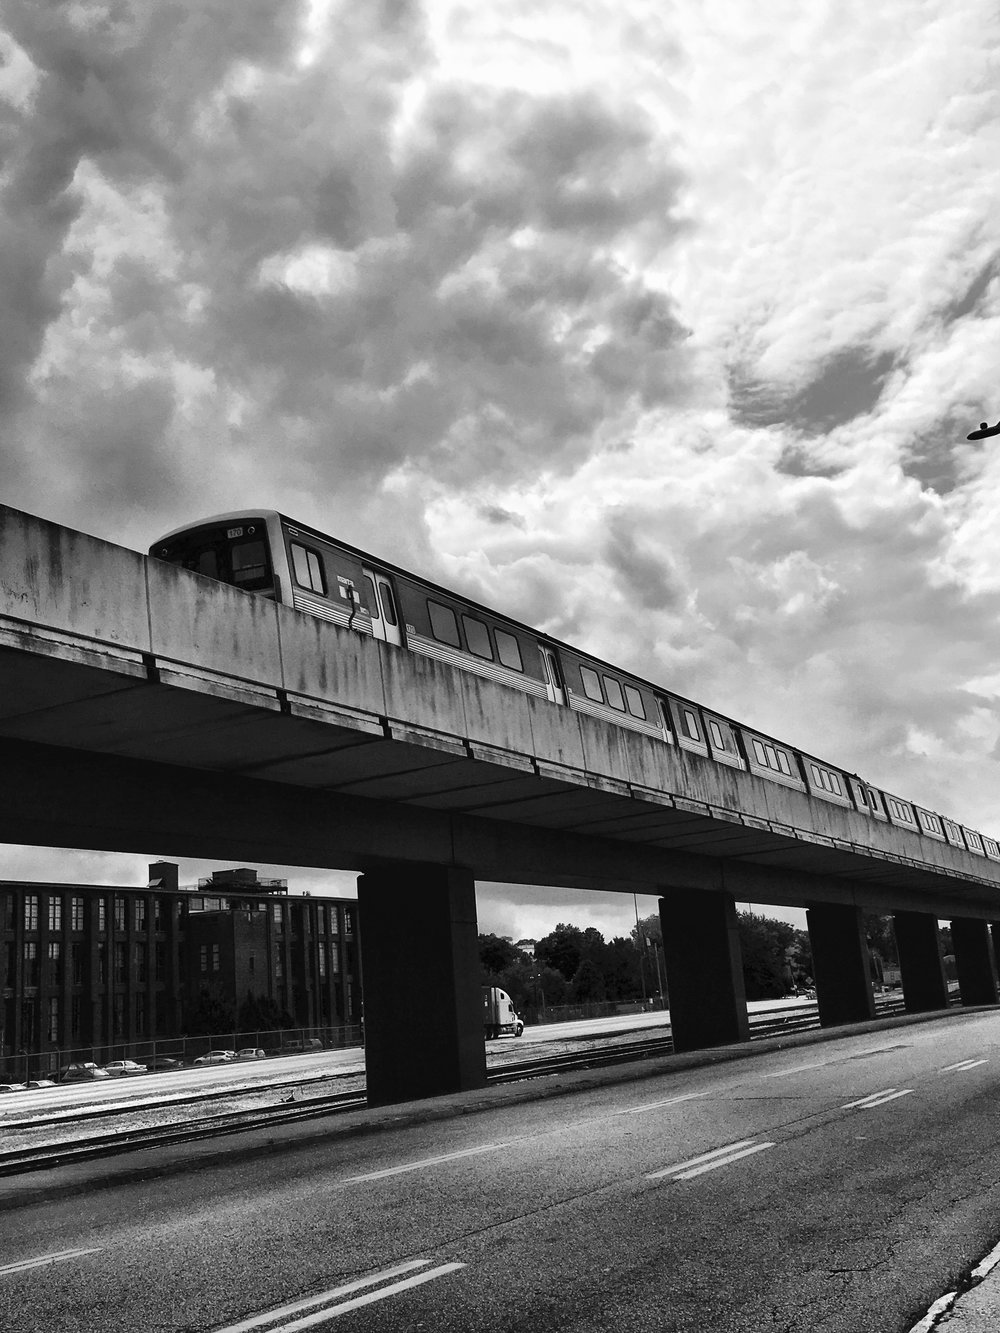 Cabbage Town MARTA Train Black and White.jpg